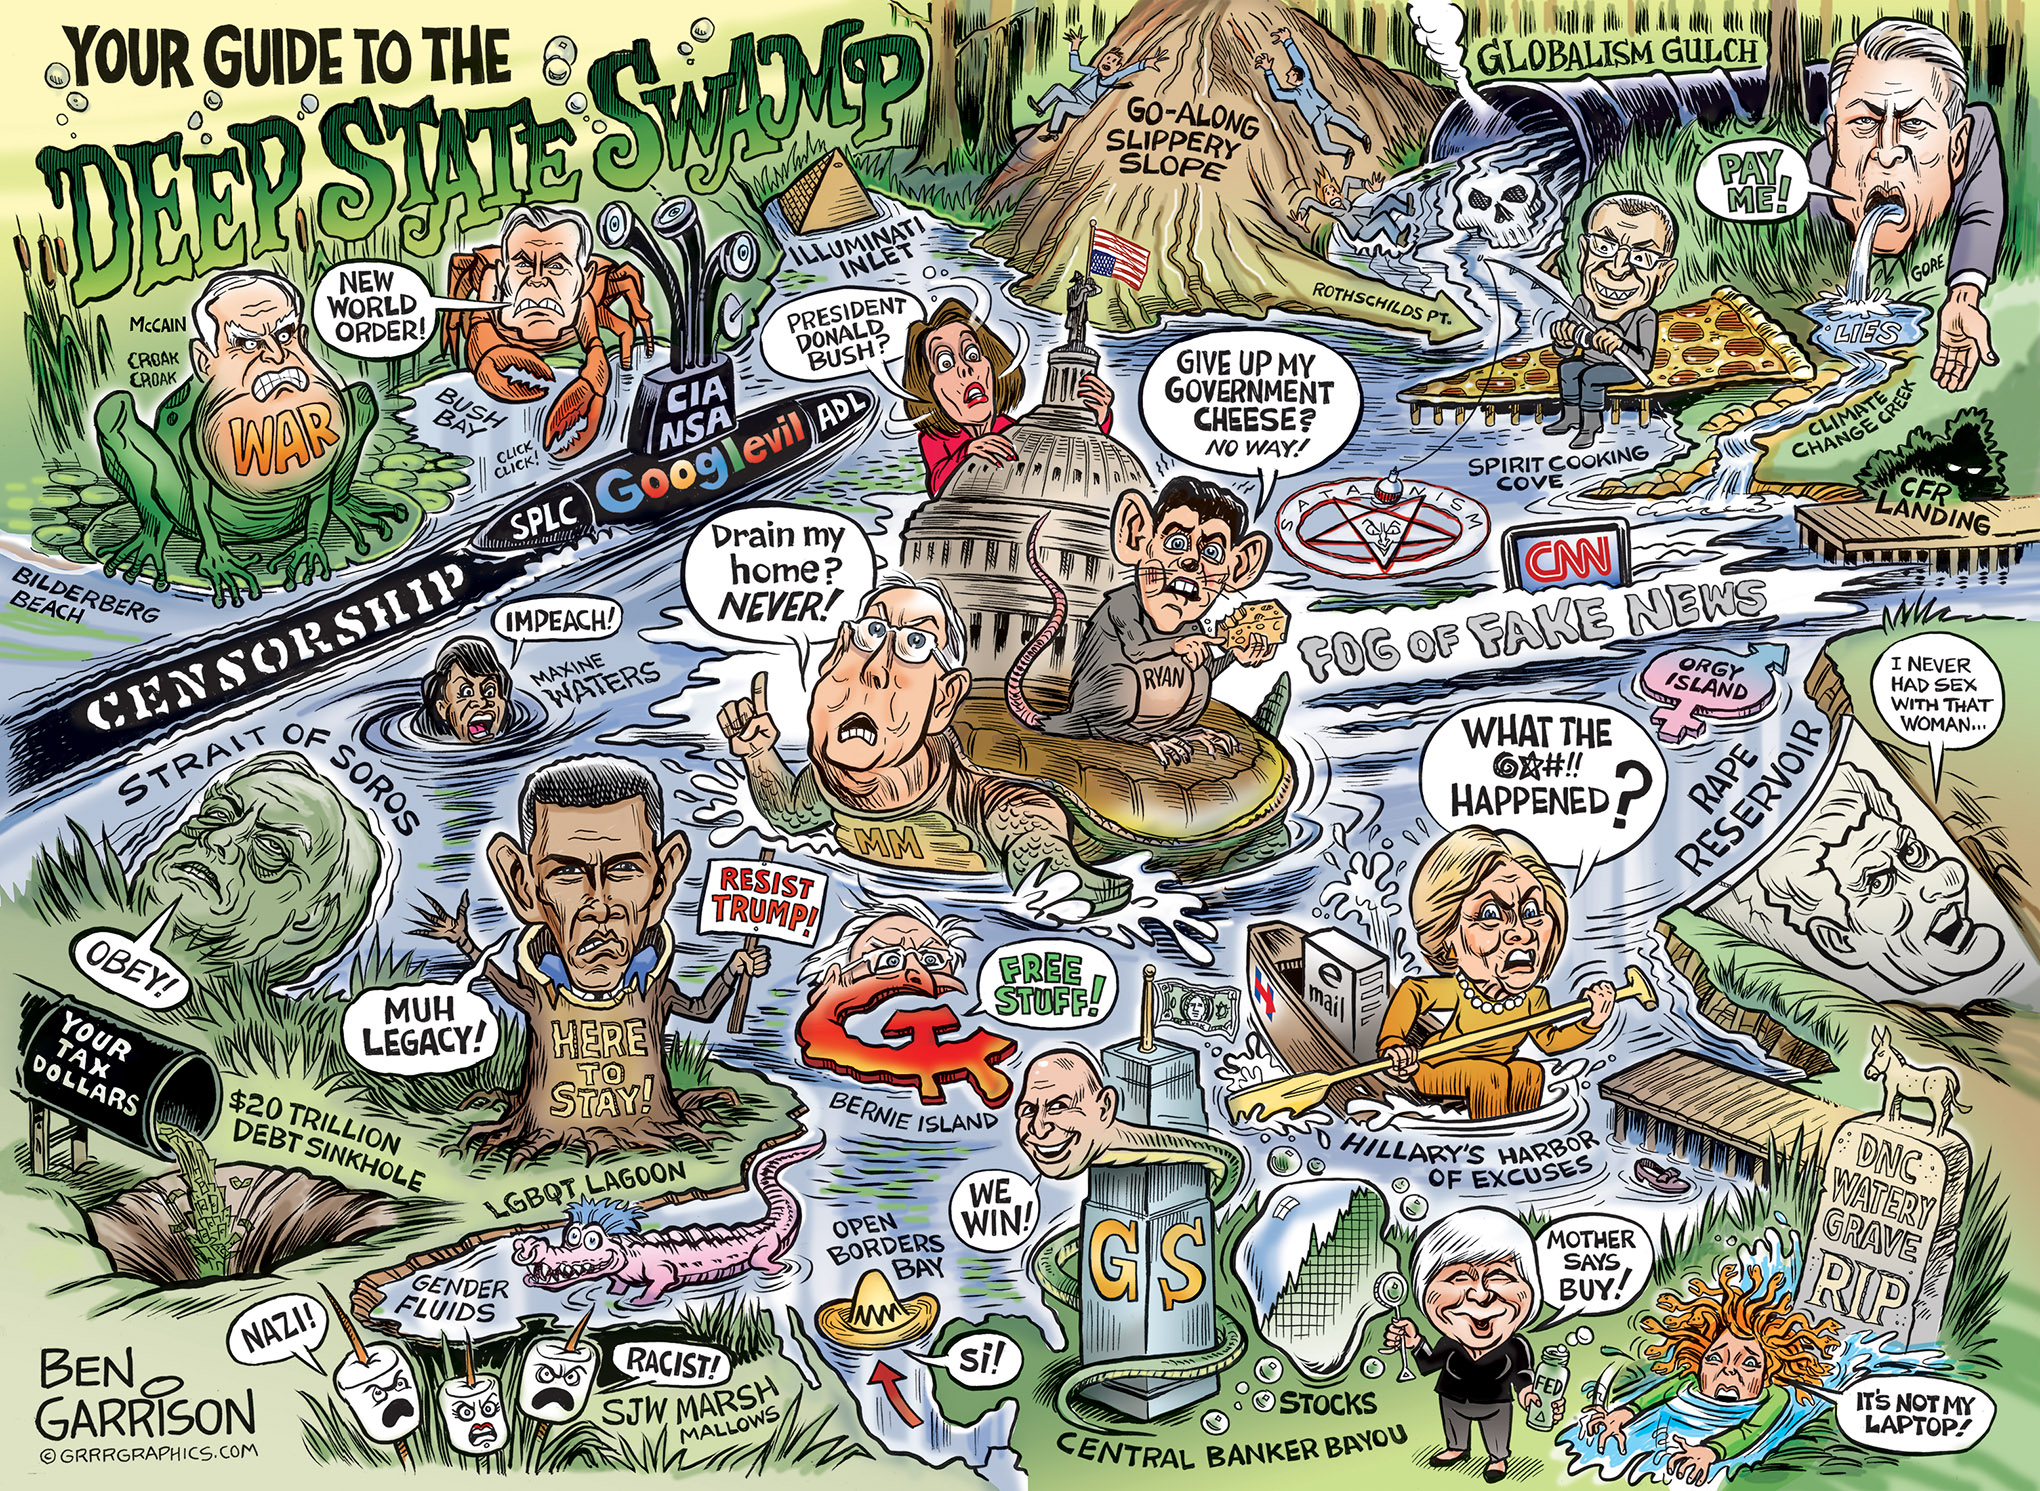 Guide to the Deep State Swamp